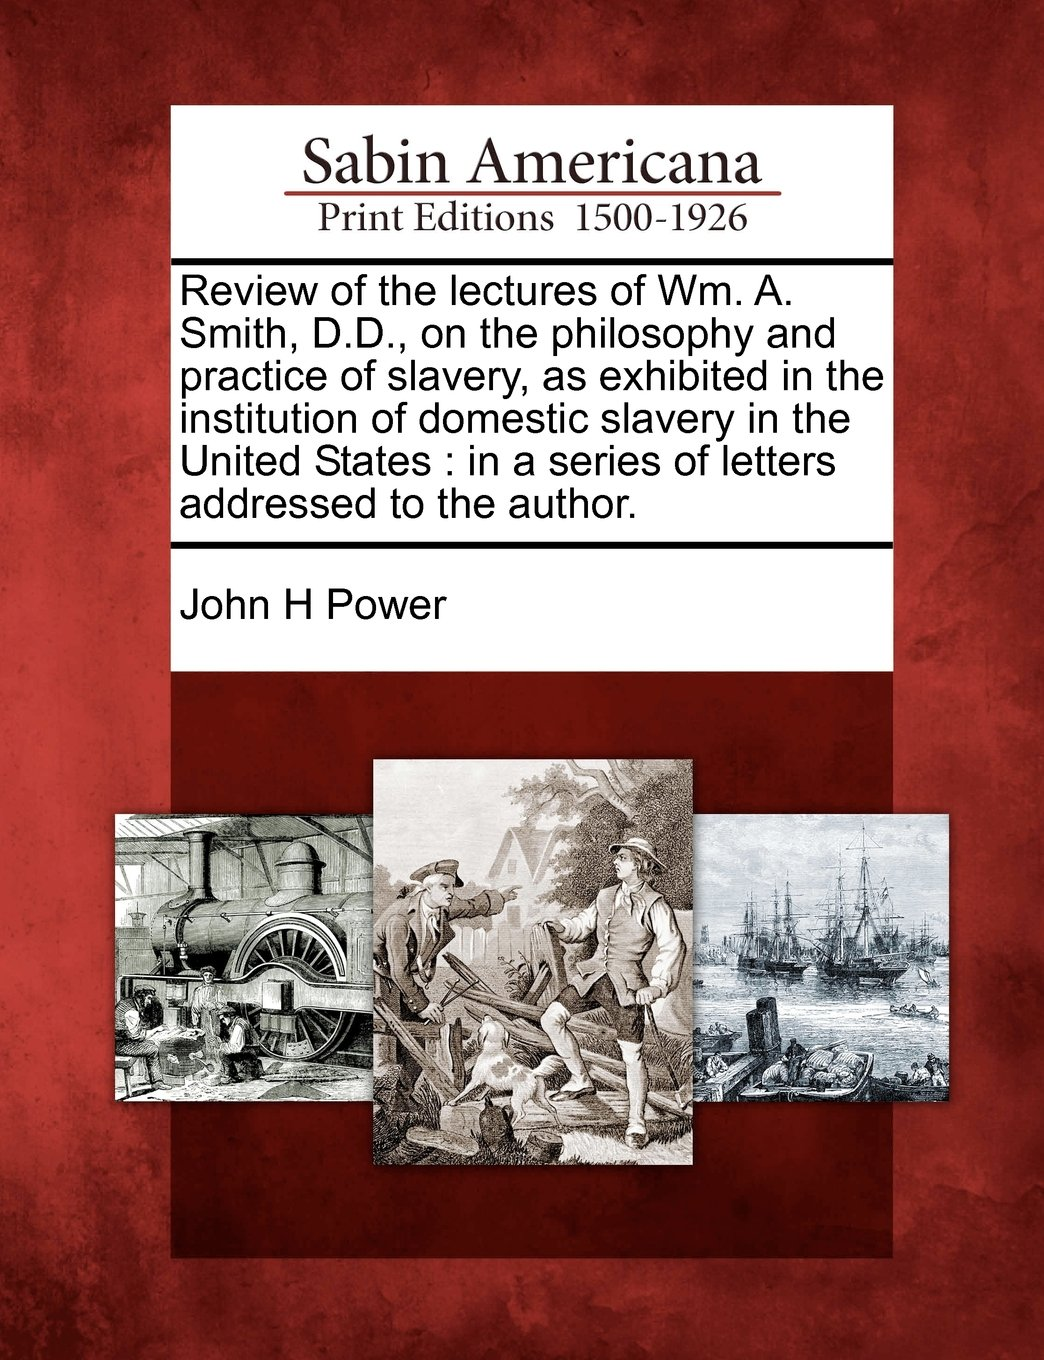 Review of the lectures of Wm. A. Smith, D.D., on the philosophy and practice of slavery, as exhibited in the institution of domestic slavery in the ... a series of letters addressed to the author. ebook